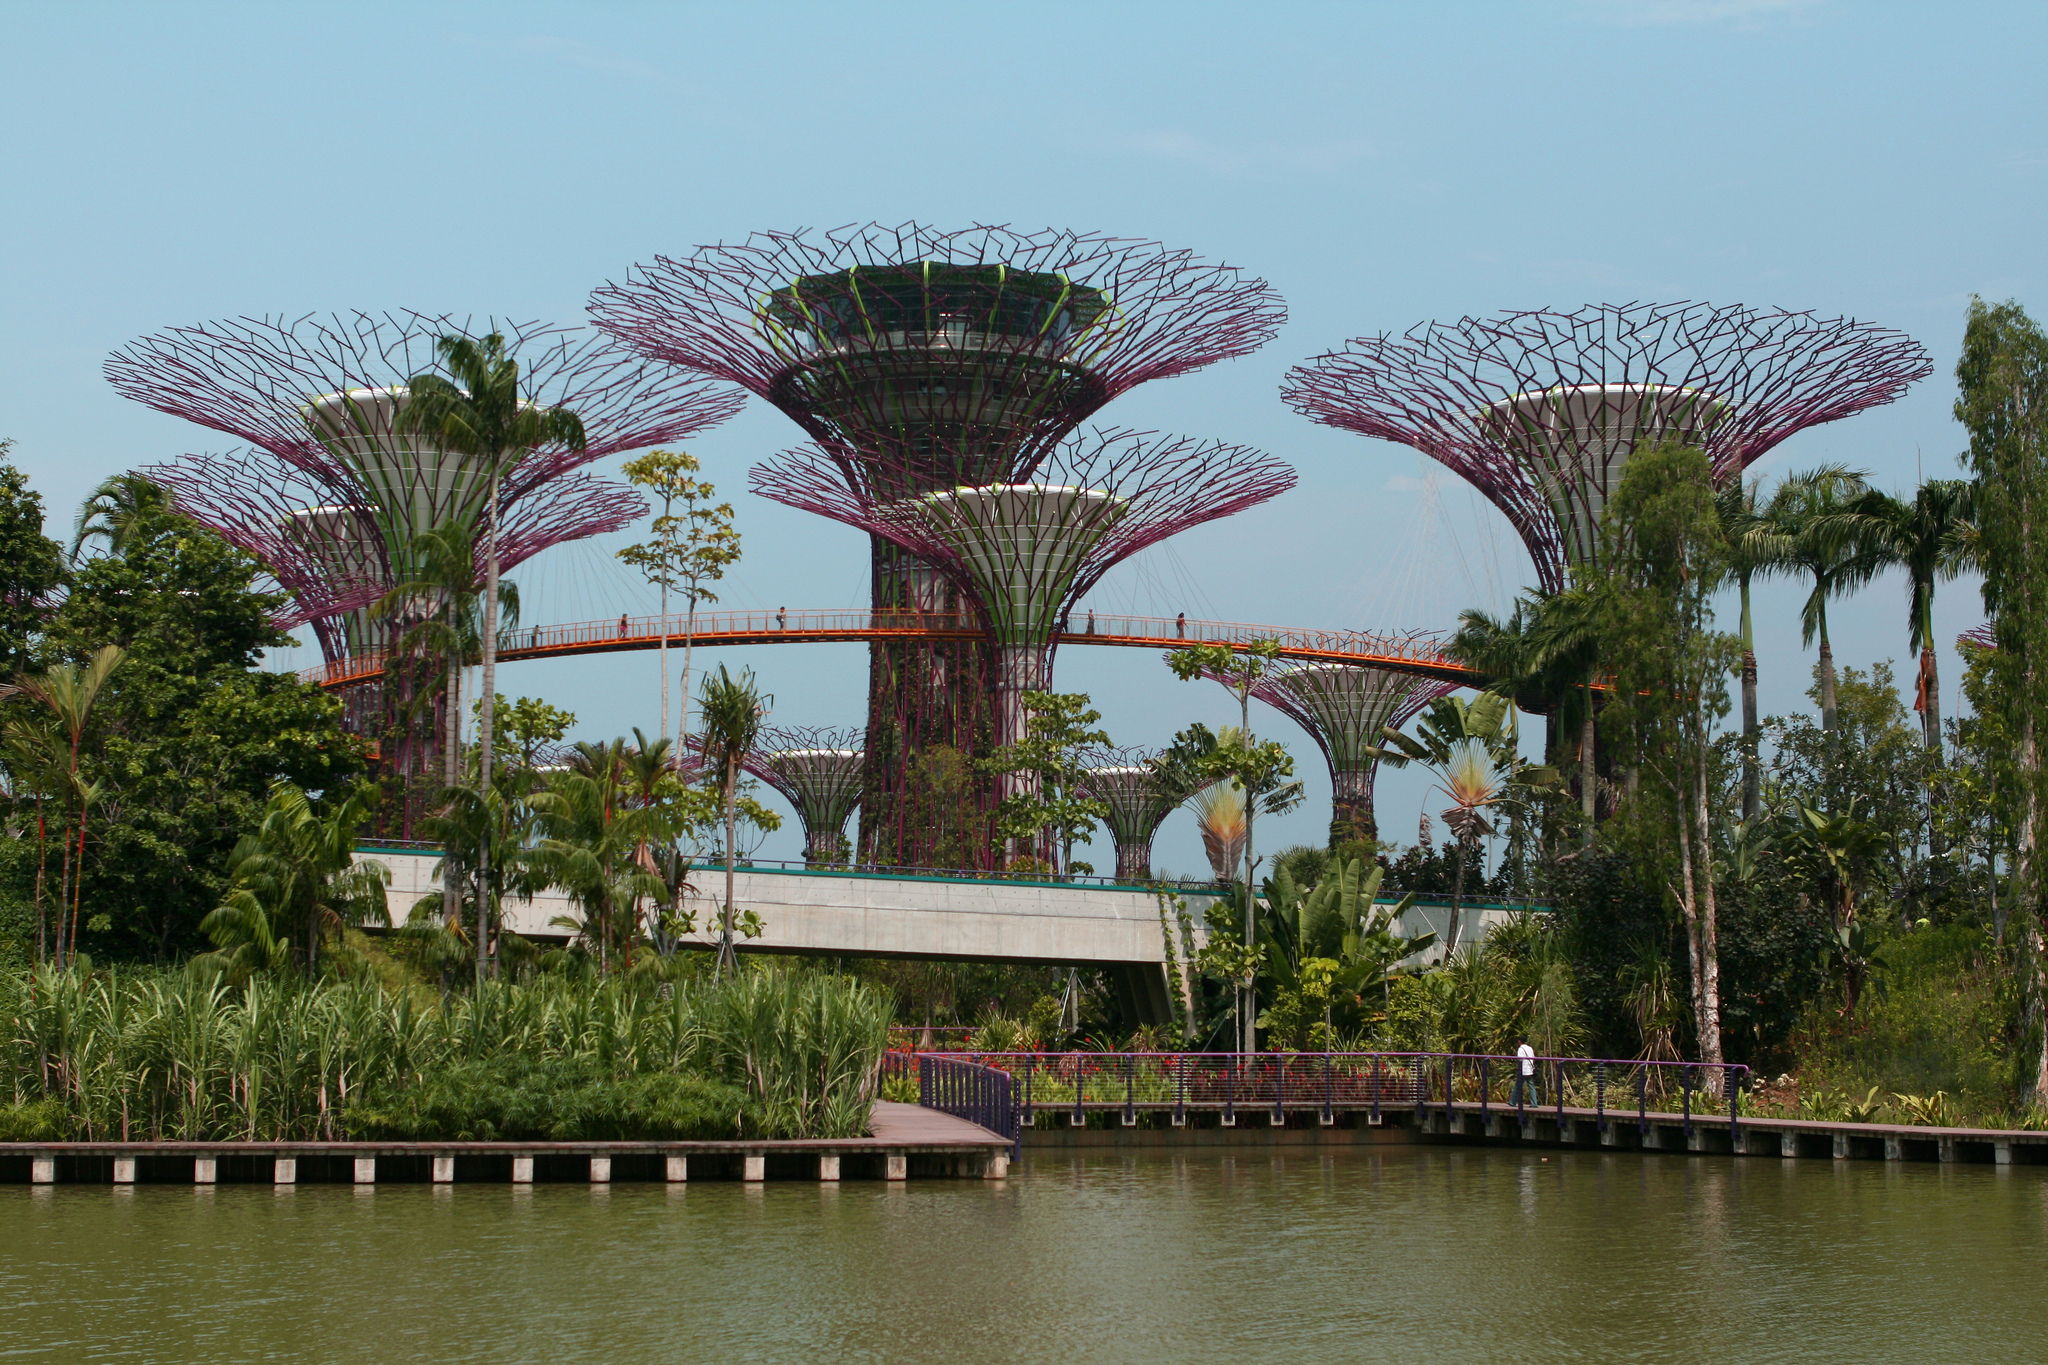 Garden by the Bay (Singapore)